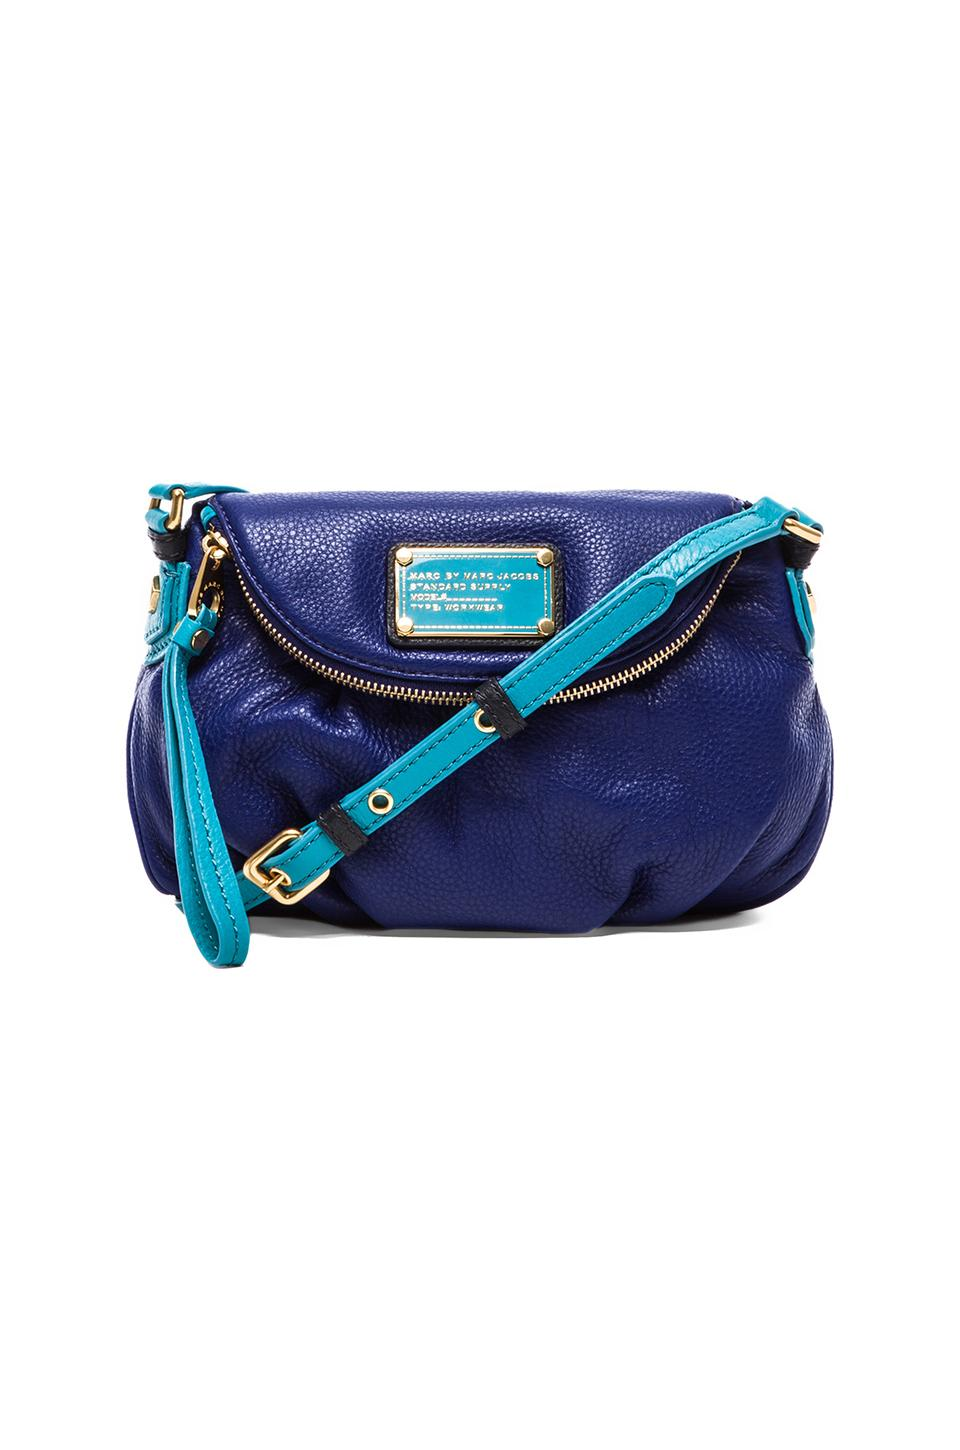 Marc by Marc Jacobs Classic Q Colorblocked Mini Natasha in Bright Royal Multi